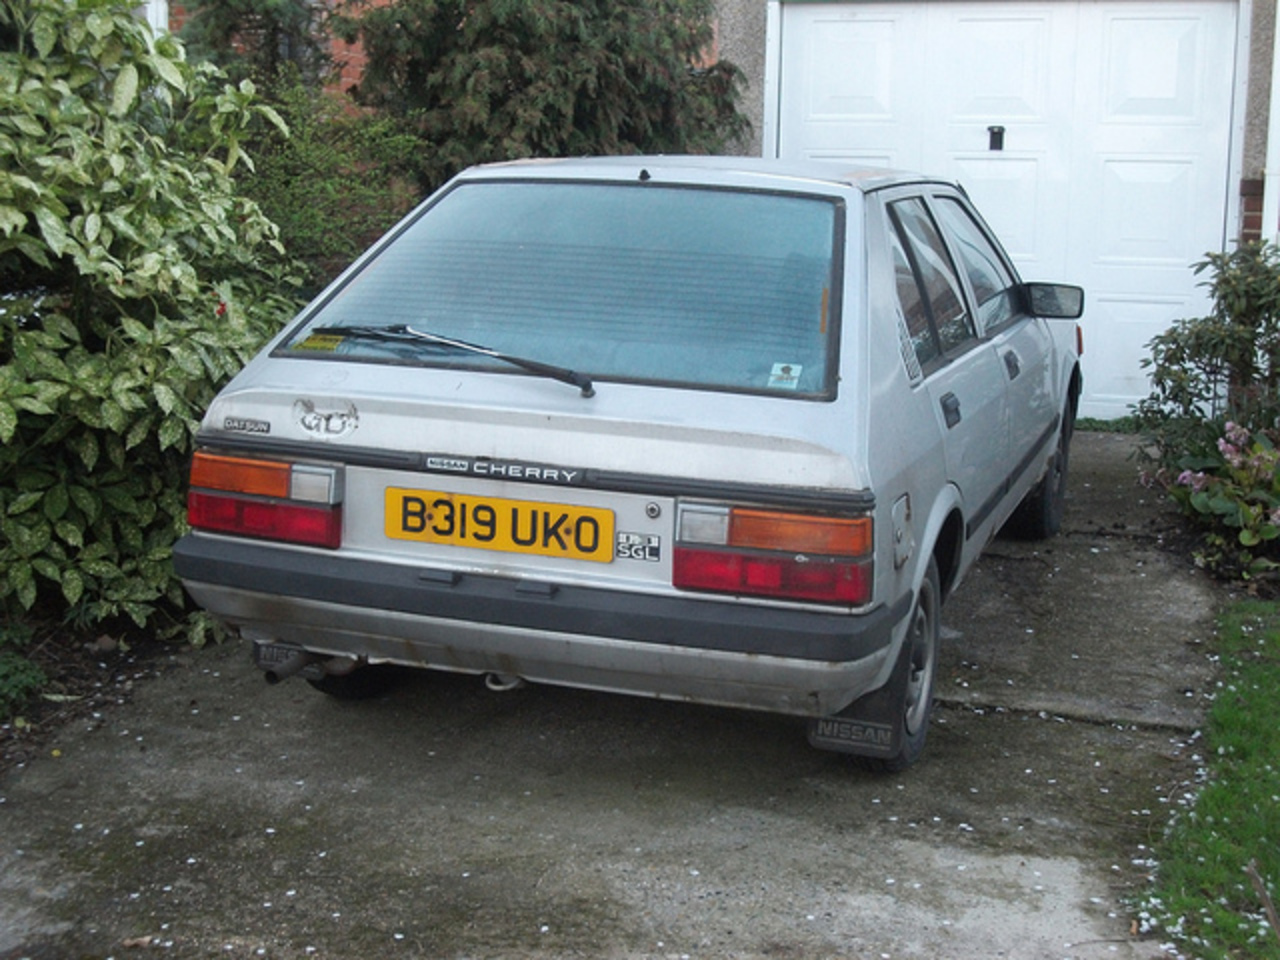 1984 Nissan Cherry 1.3 SGL | Flickr - Photo Sharing!